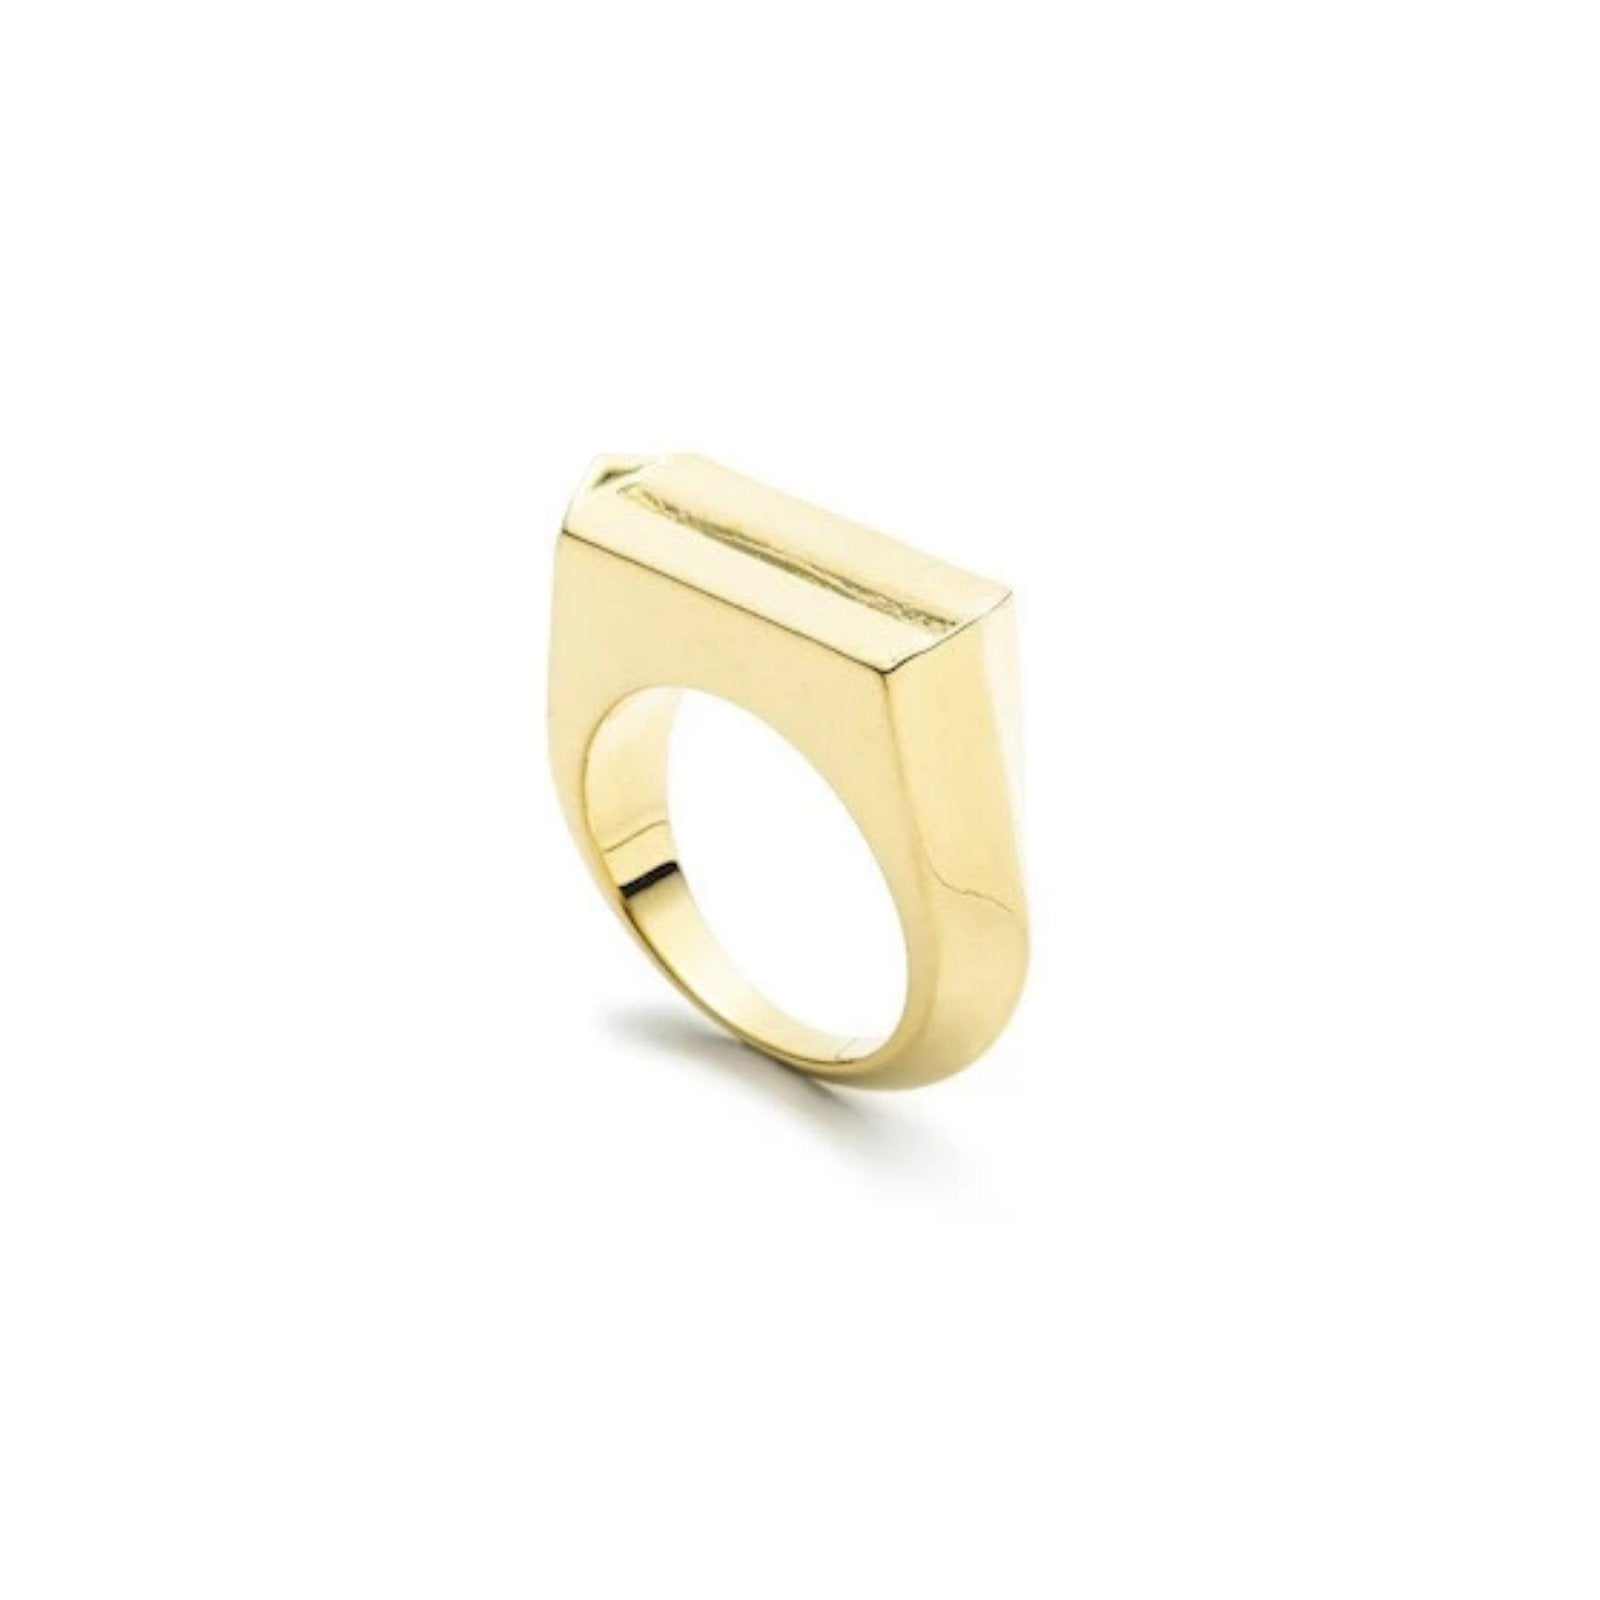 HEDRON ZERO RING - 18K GOLD PLATED BRASS